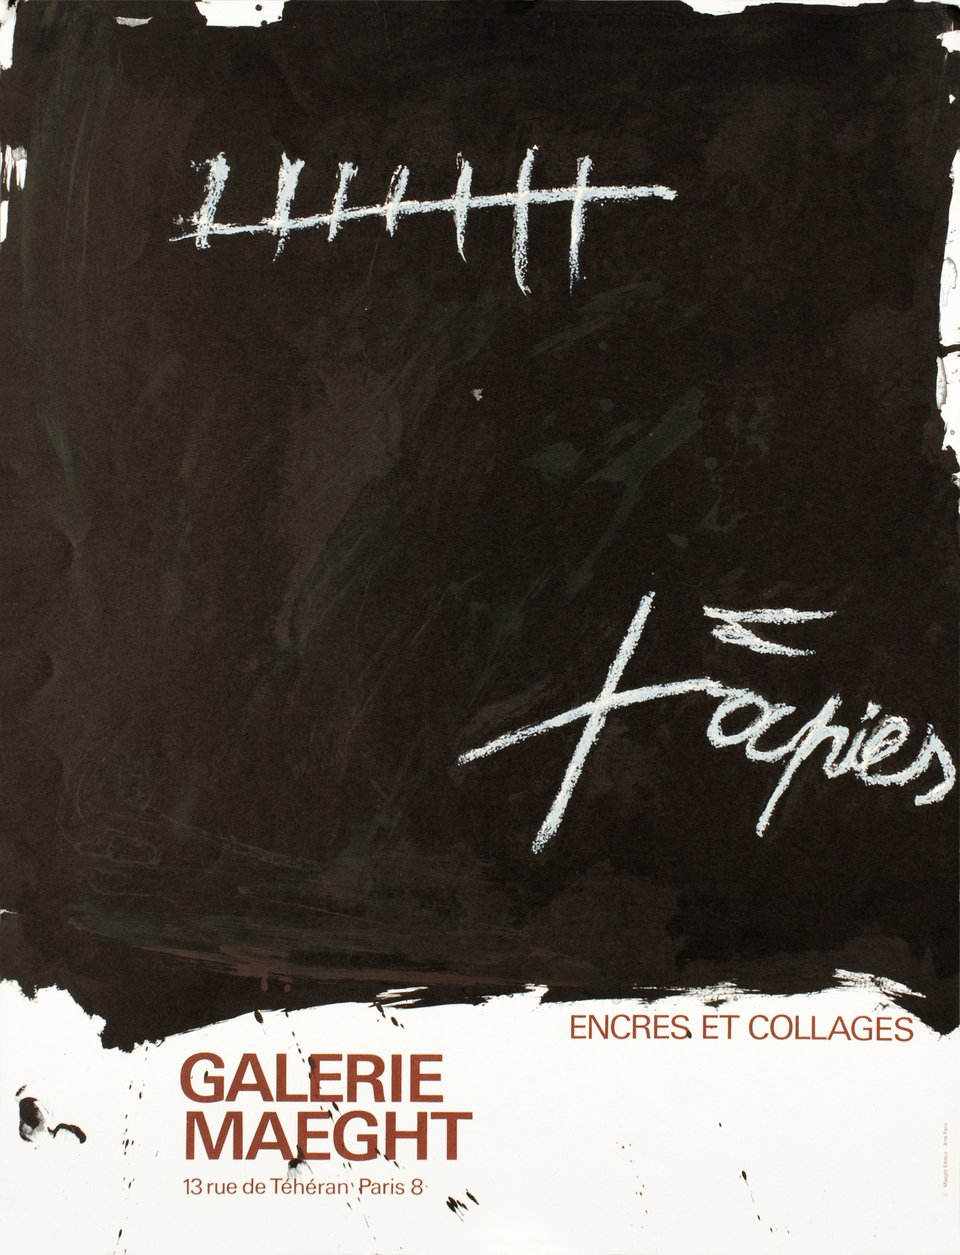 Tapies, encres et collages, Galerie Maeght – Affiche ancienne – Antoni TAPIES – 1968